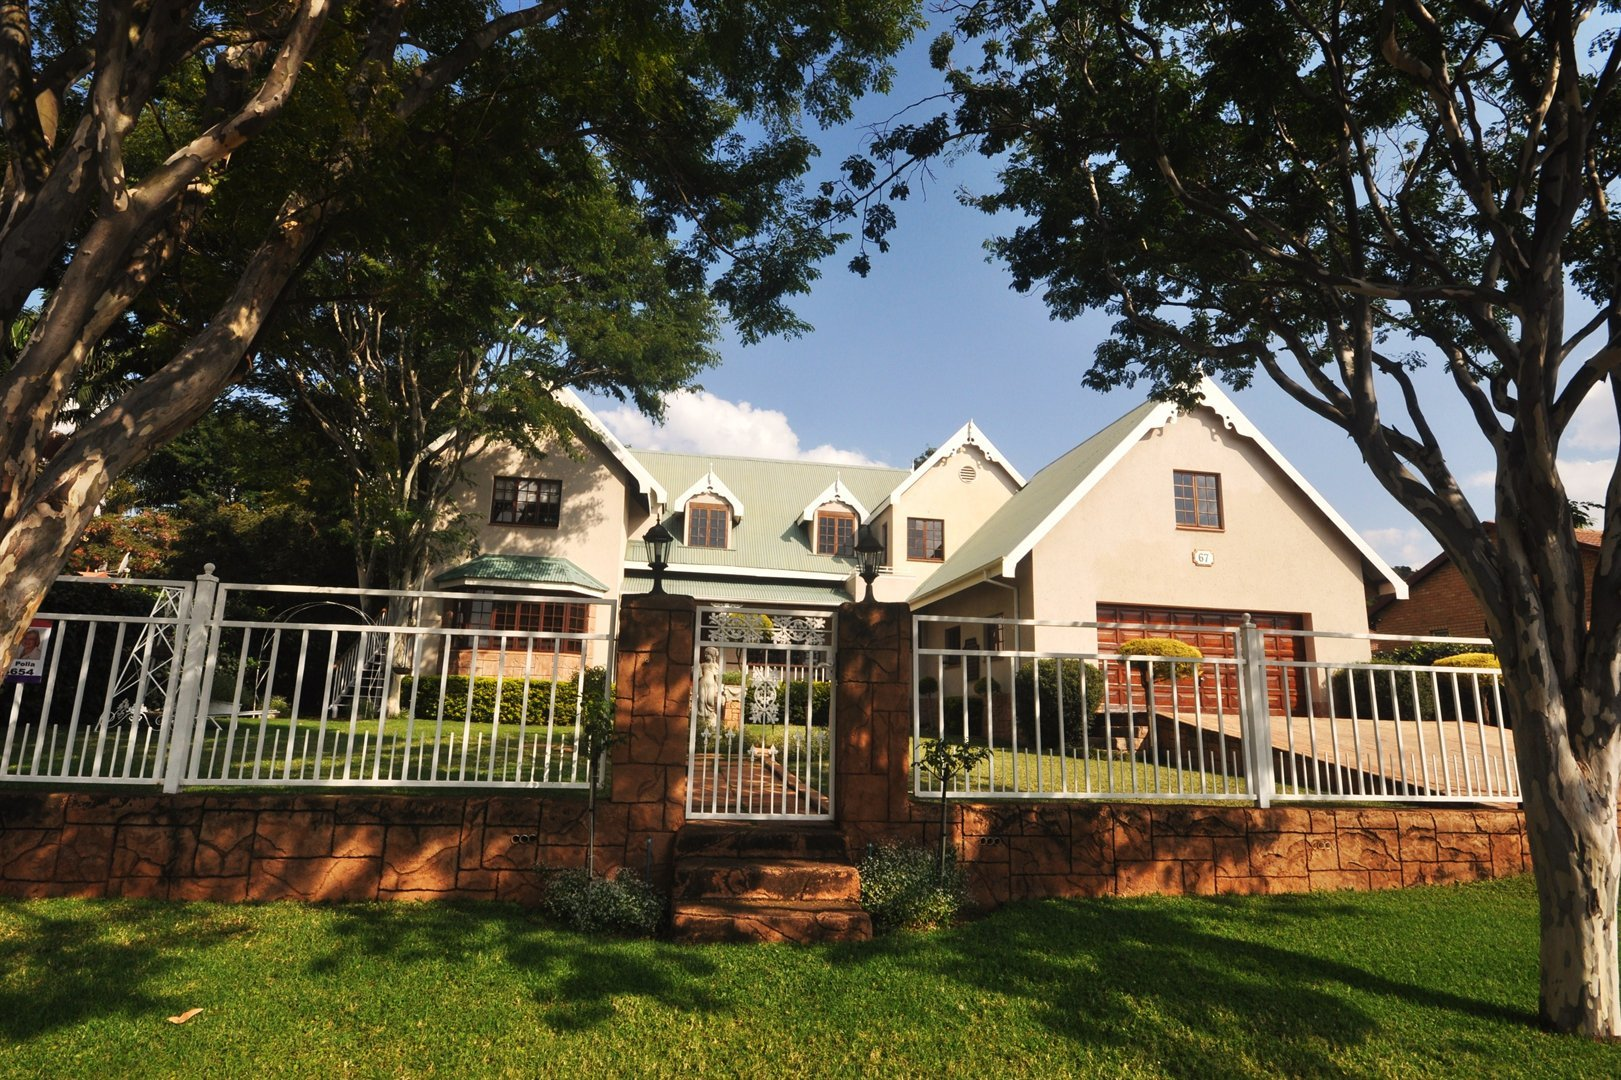 6 Bedroom House with Guest house opportunity